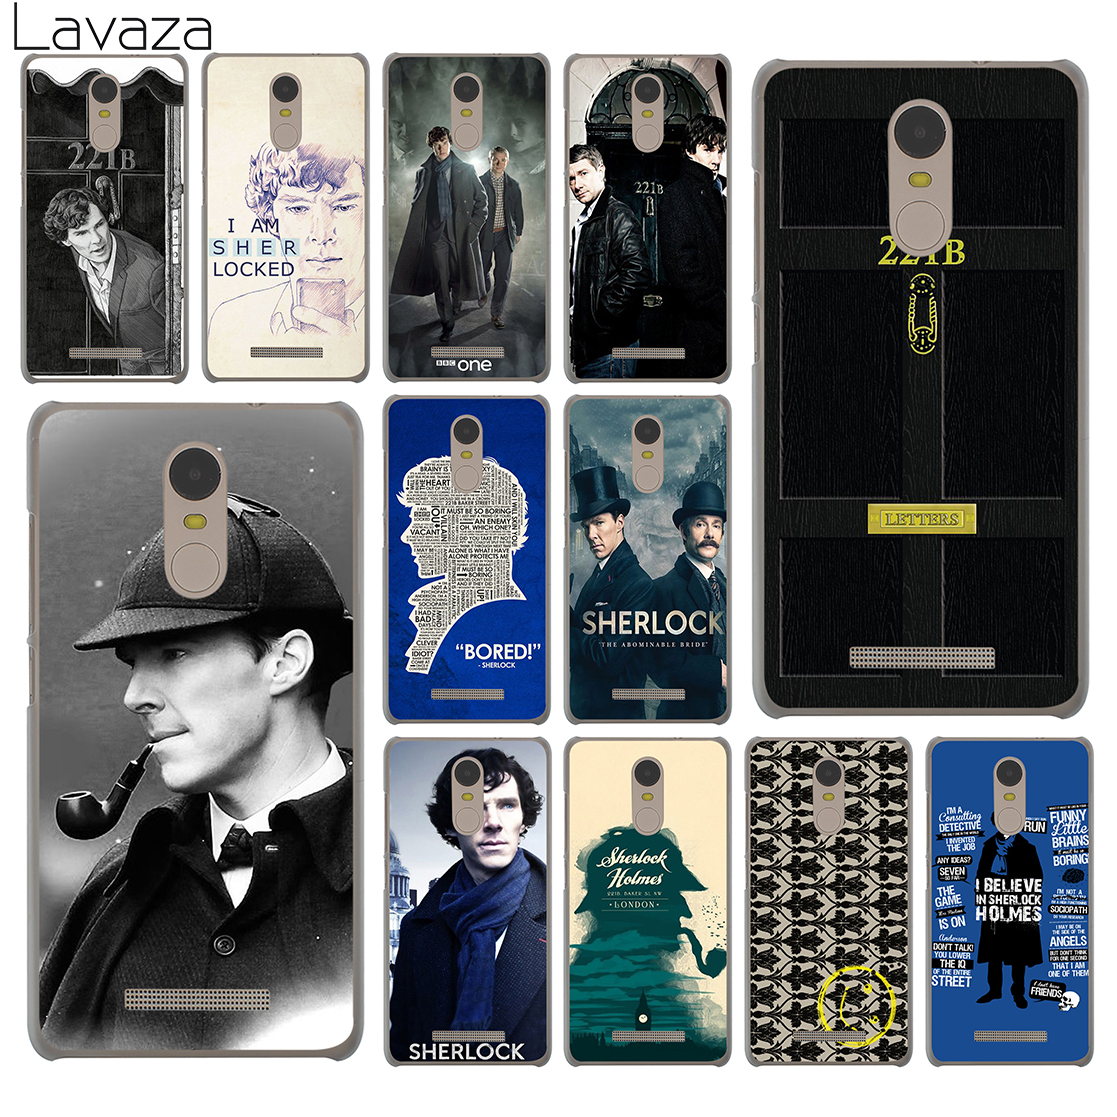 Maiyaca Tardis Doctor Who Phone Case For Xiaomi Redmi 6 6a S2 4x 5plus Note 7 5 Pro 5a Mi 6 9 8 Se 6x A2 Max 2 3 F1 Elegant Appearance Fitted Cases Cellphones & Telecommunications